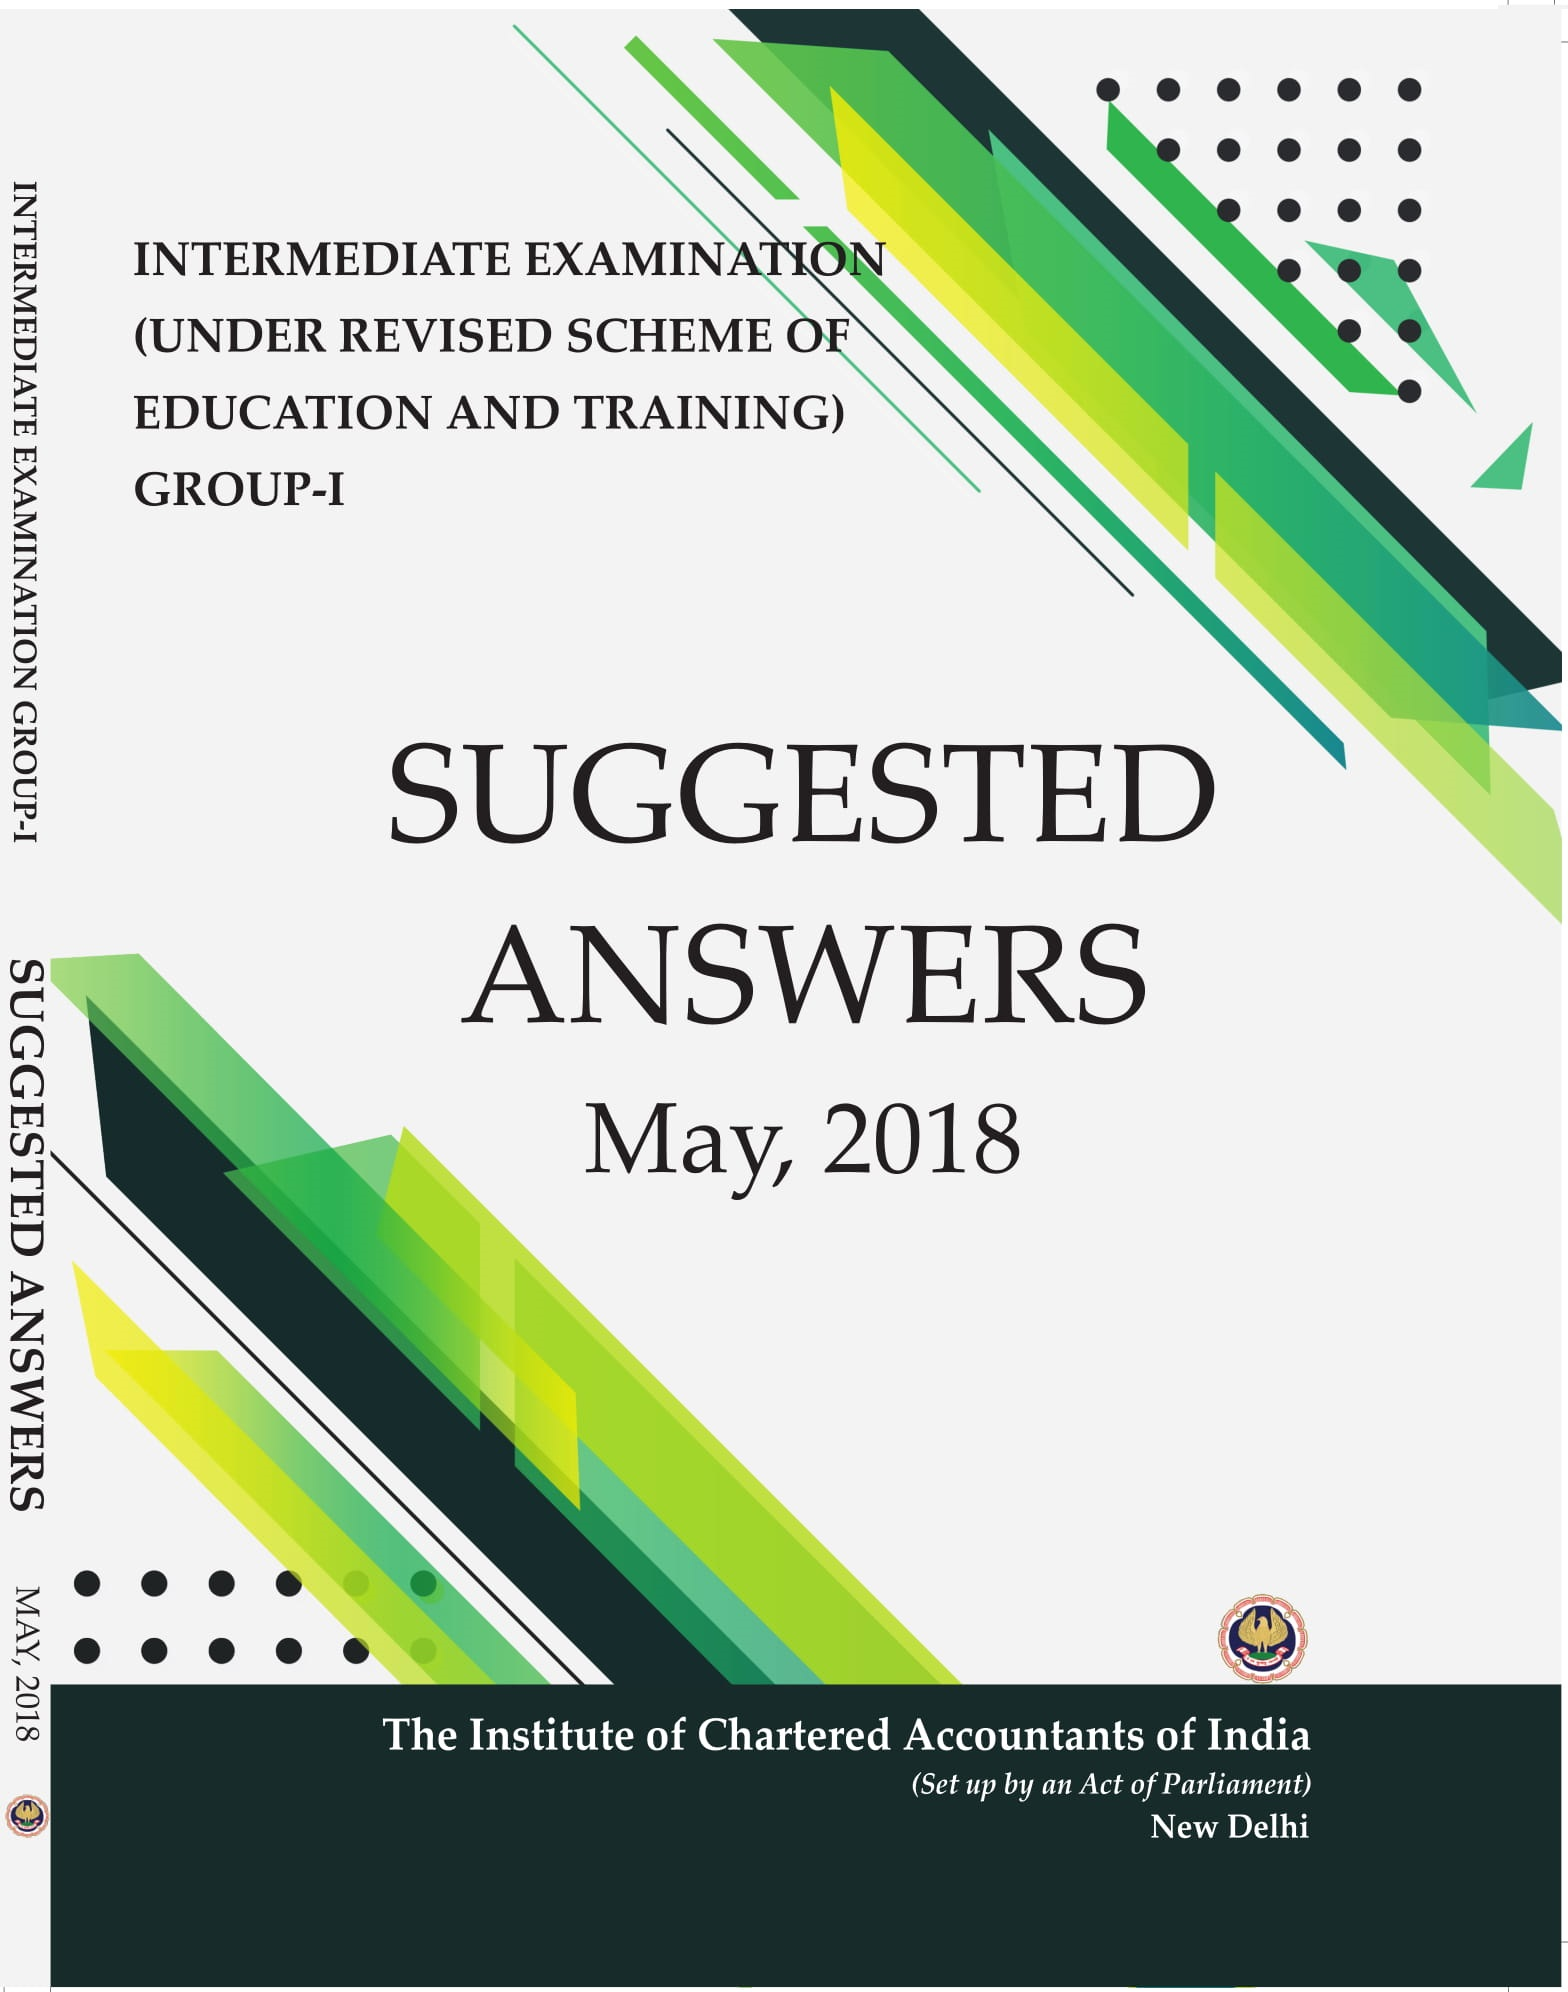 Intermediate Examination (Under Revised Scheme of Education and Training) Group-1 Suggested Answers May, 2018